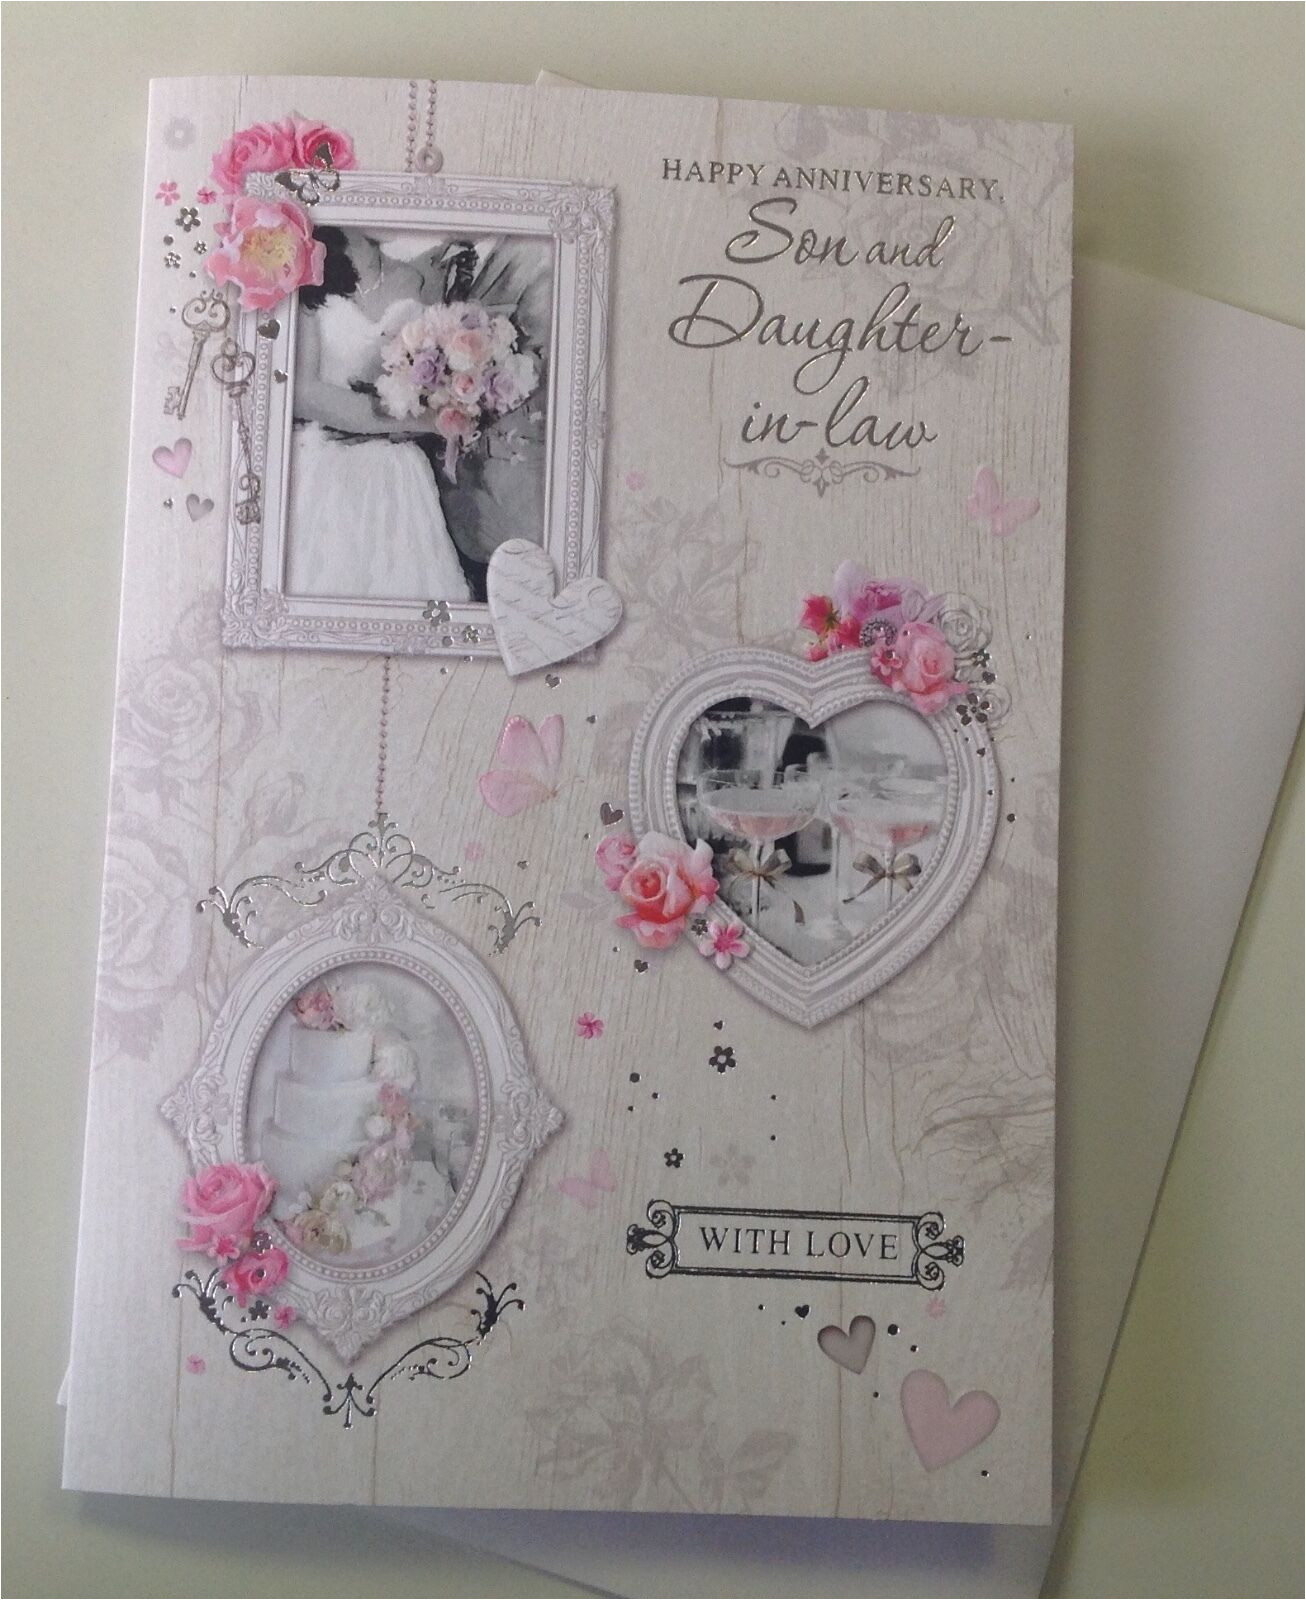 Anniversary Card Daughter and son In Law Cards Stationery son Daughter In Law Anniversary Card